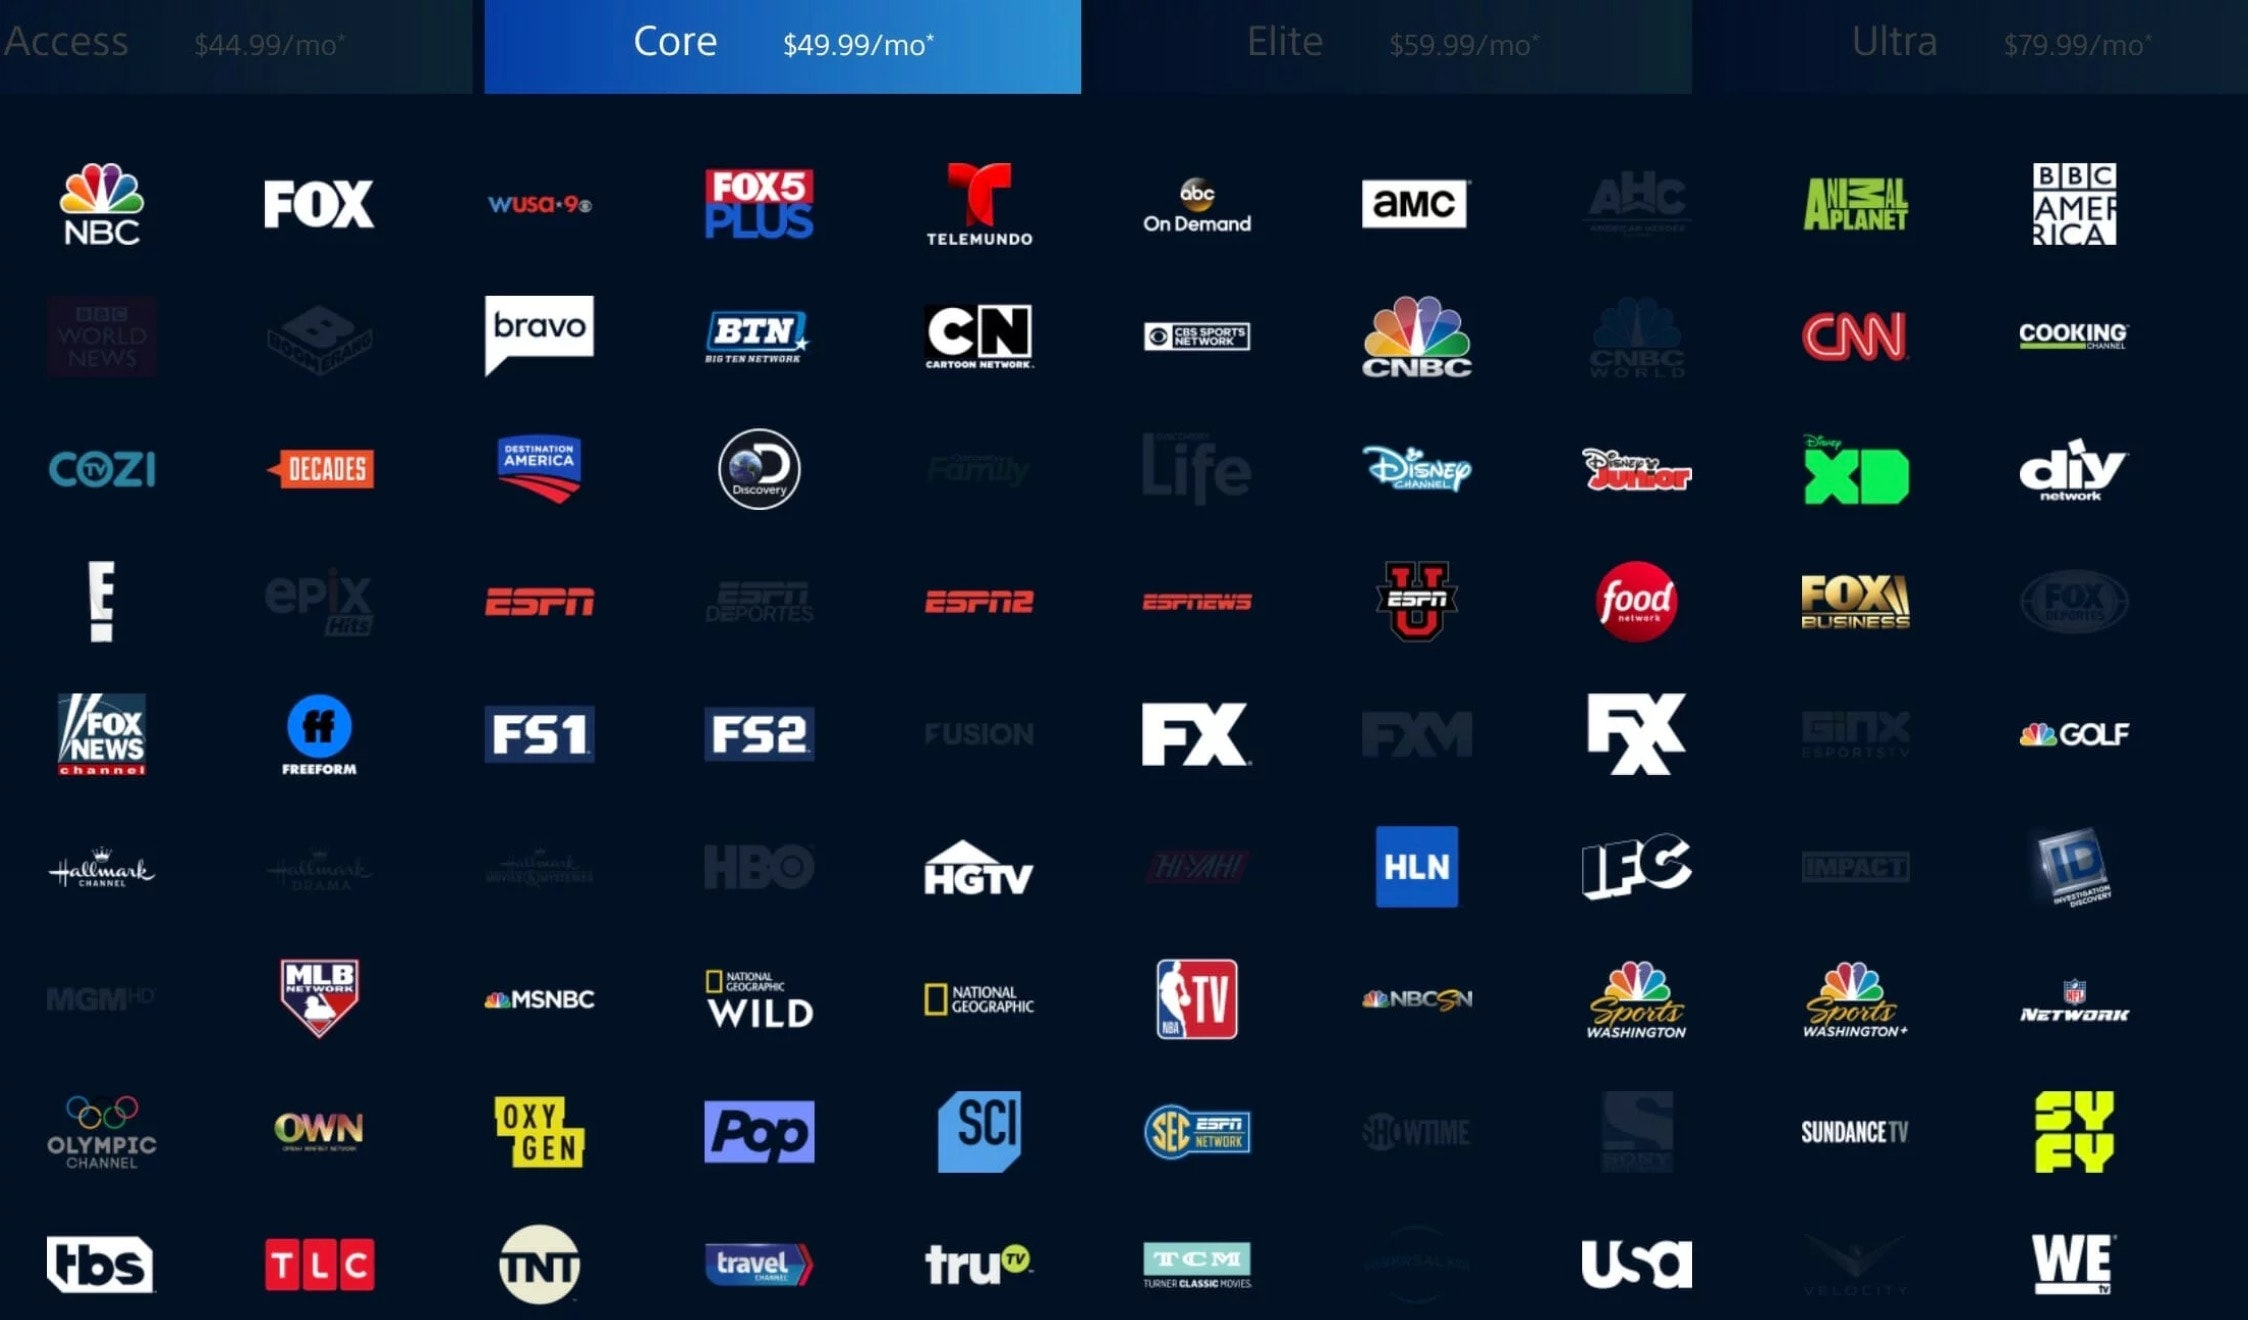 2019 international champions cup real madrid arsenal soccer live stream free playstation vue core